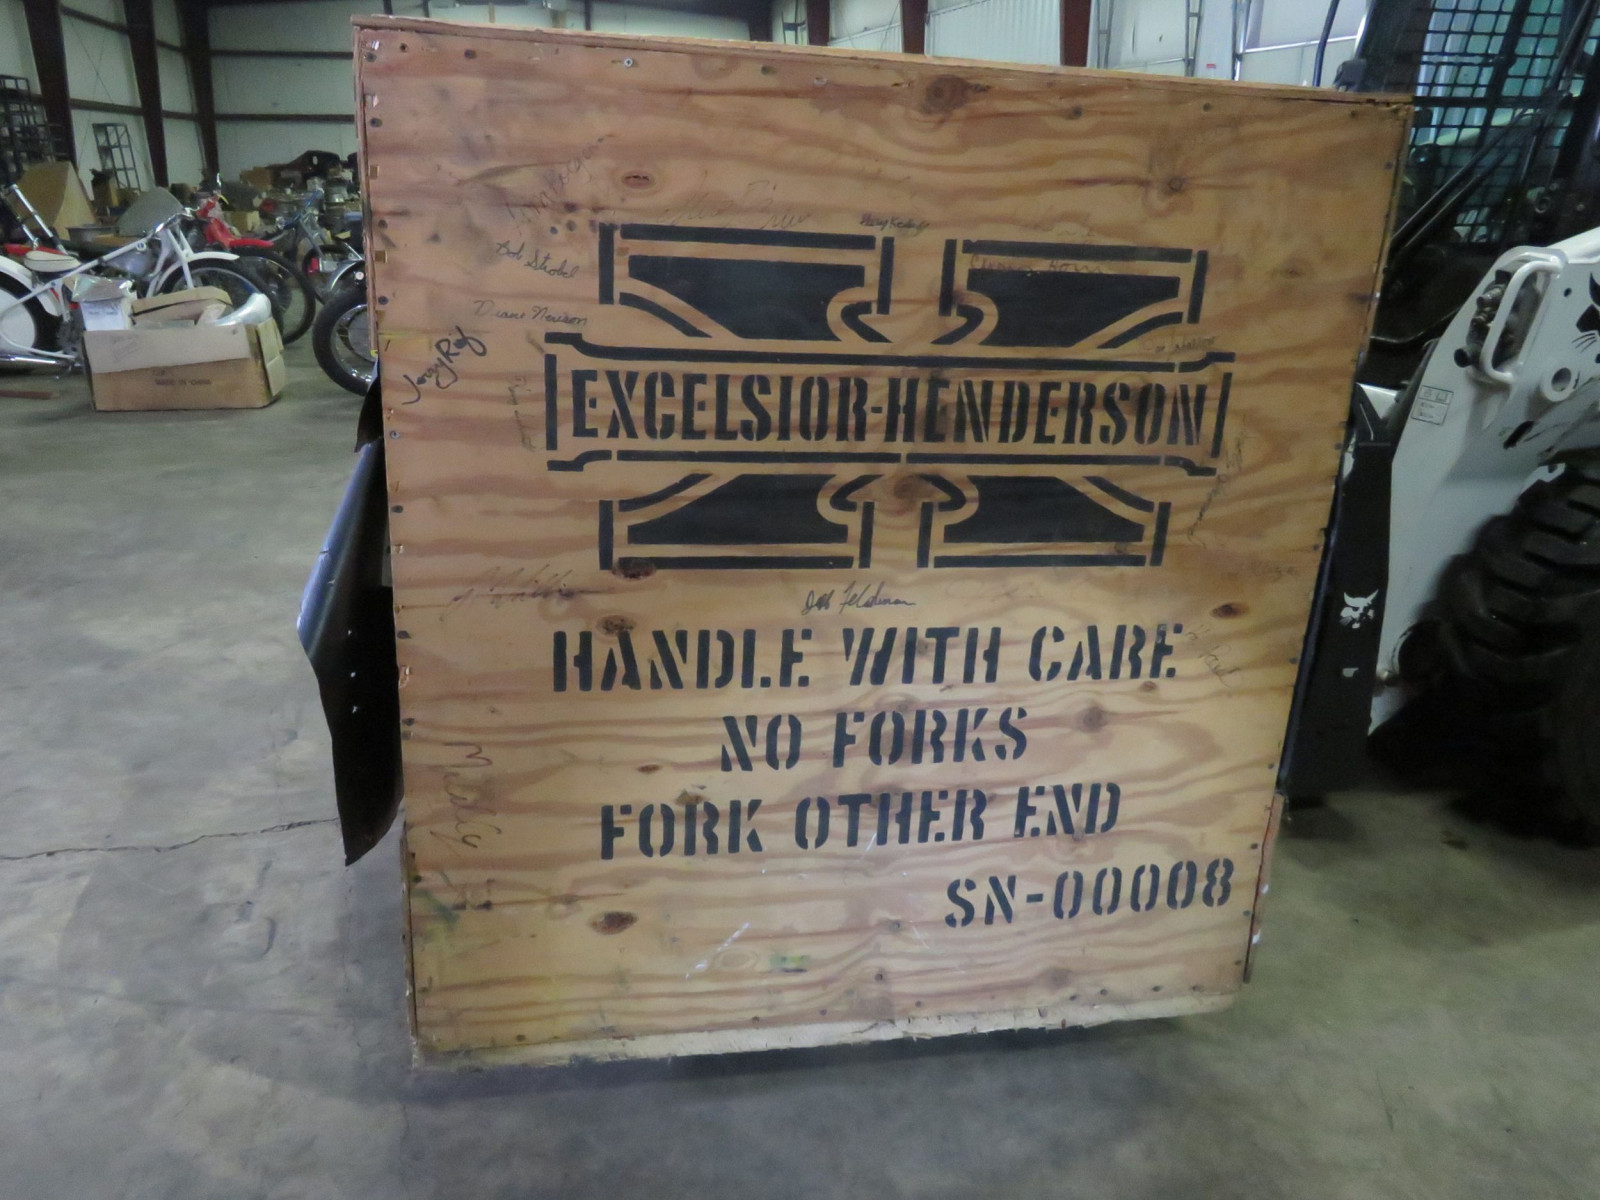 1999 Excelsior Henderson Super X NIB Motorcycle - Image 3